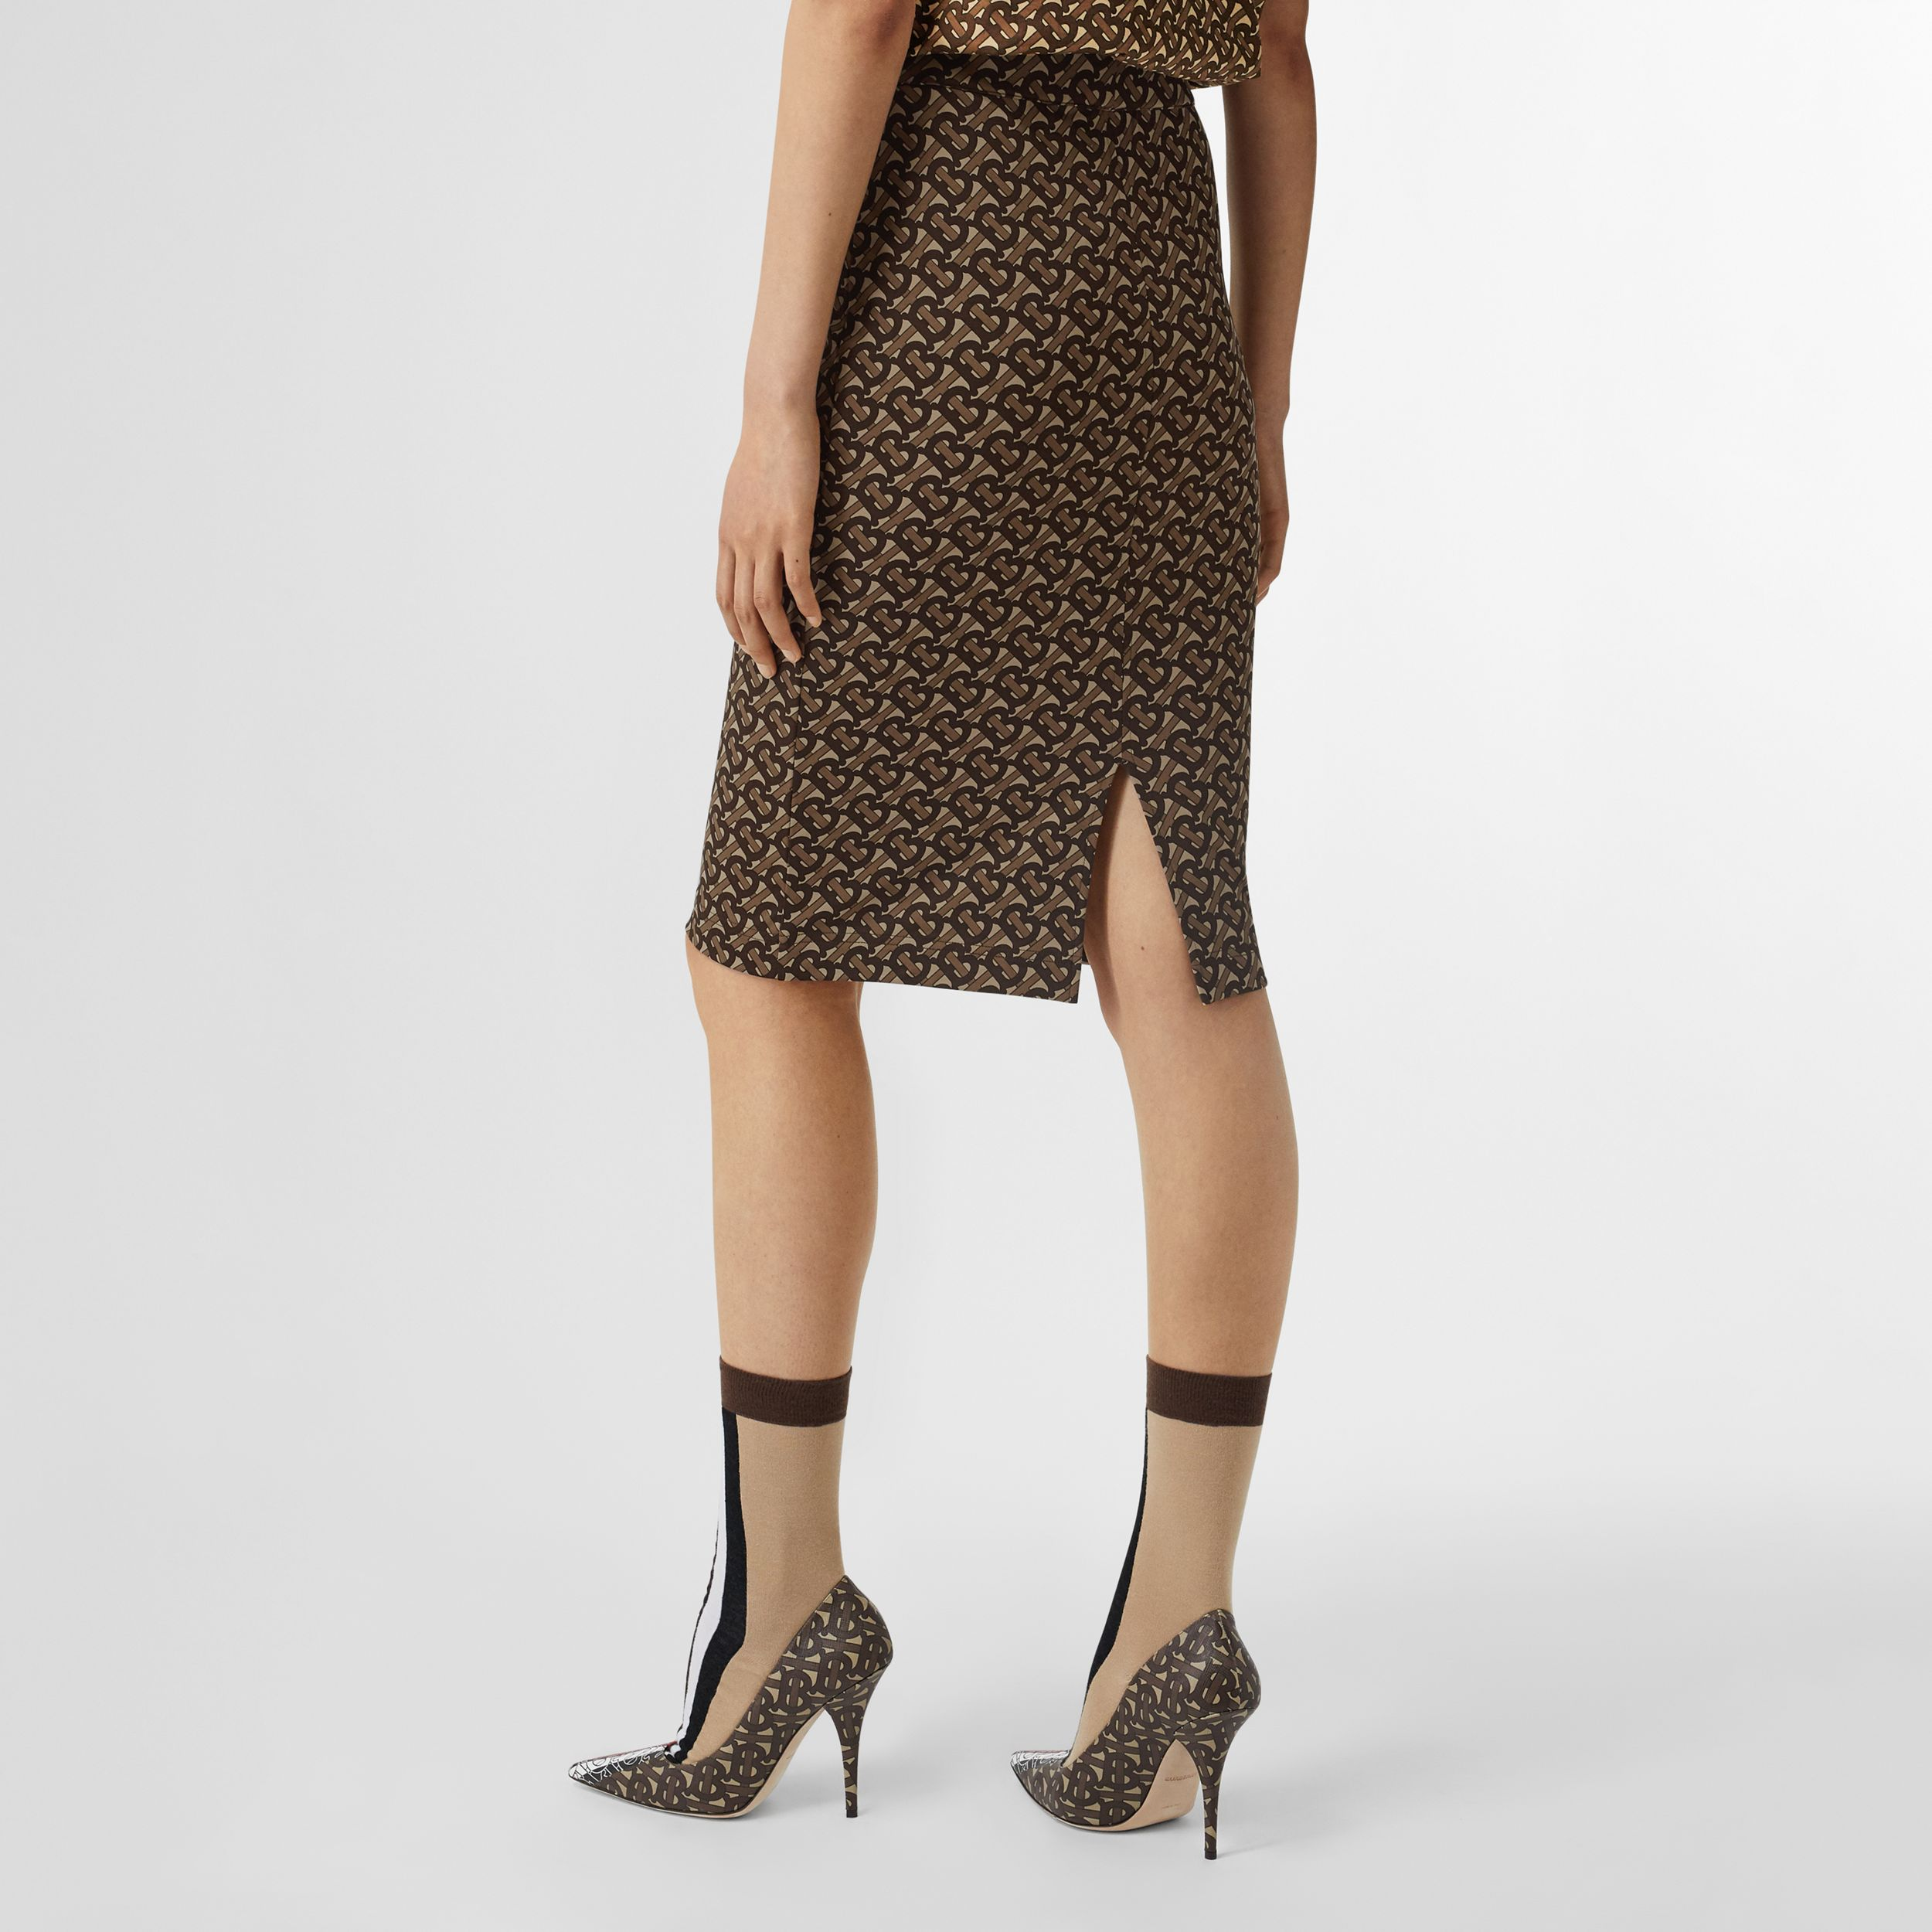 Monogram Stripe Print Stretch Jersey Pencil Skirt in Bridle Brown - Women | Burberry Singapore - 3